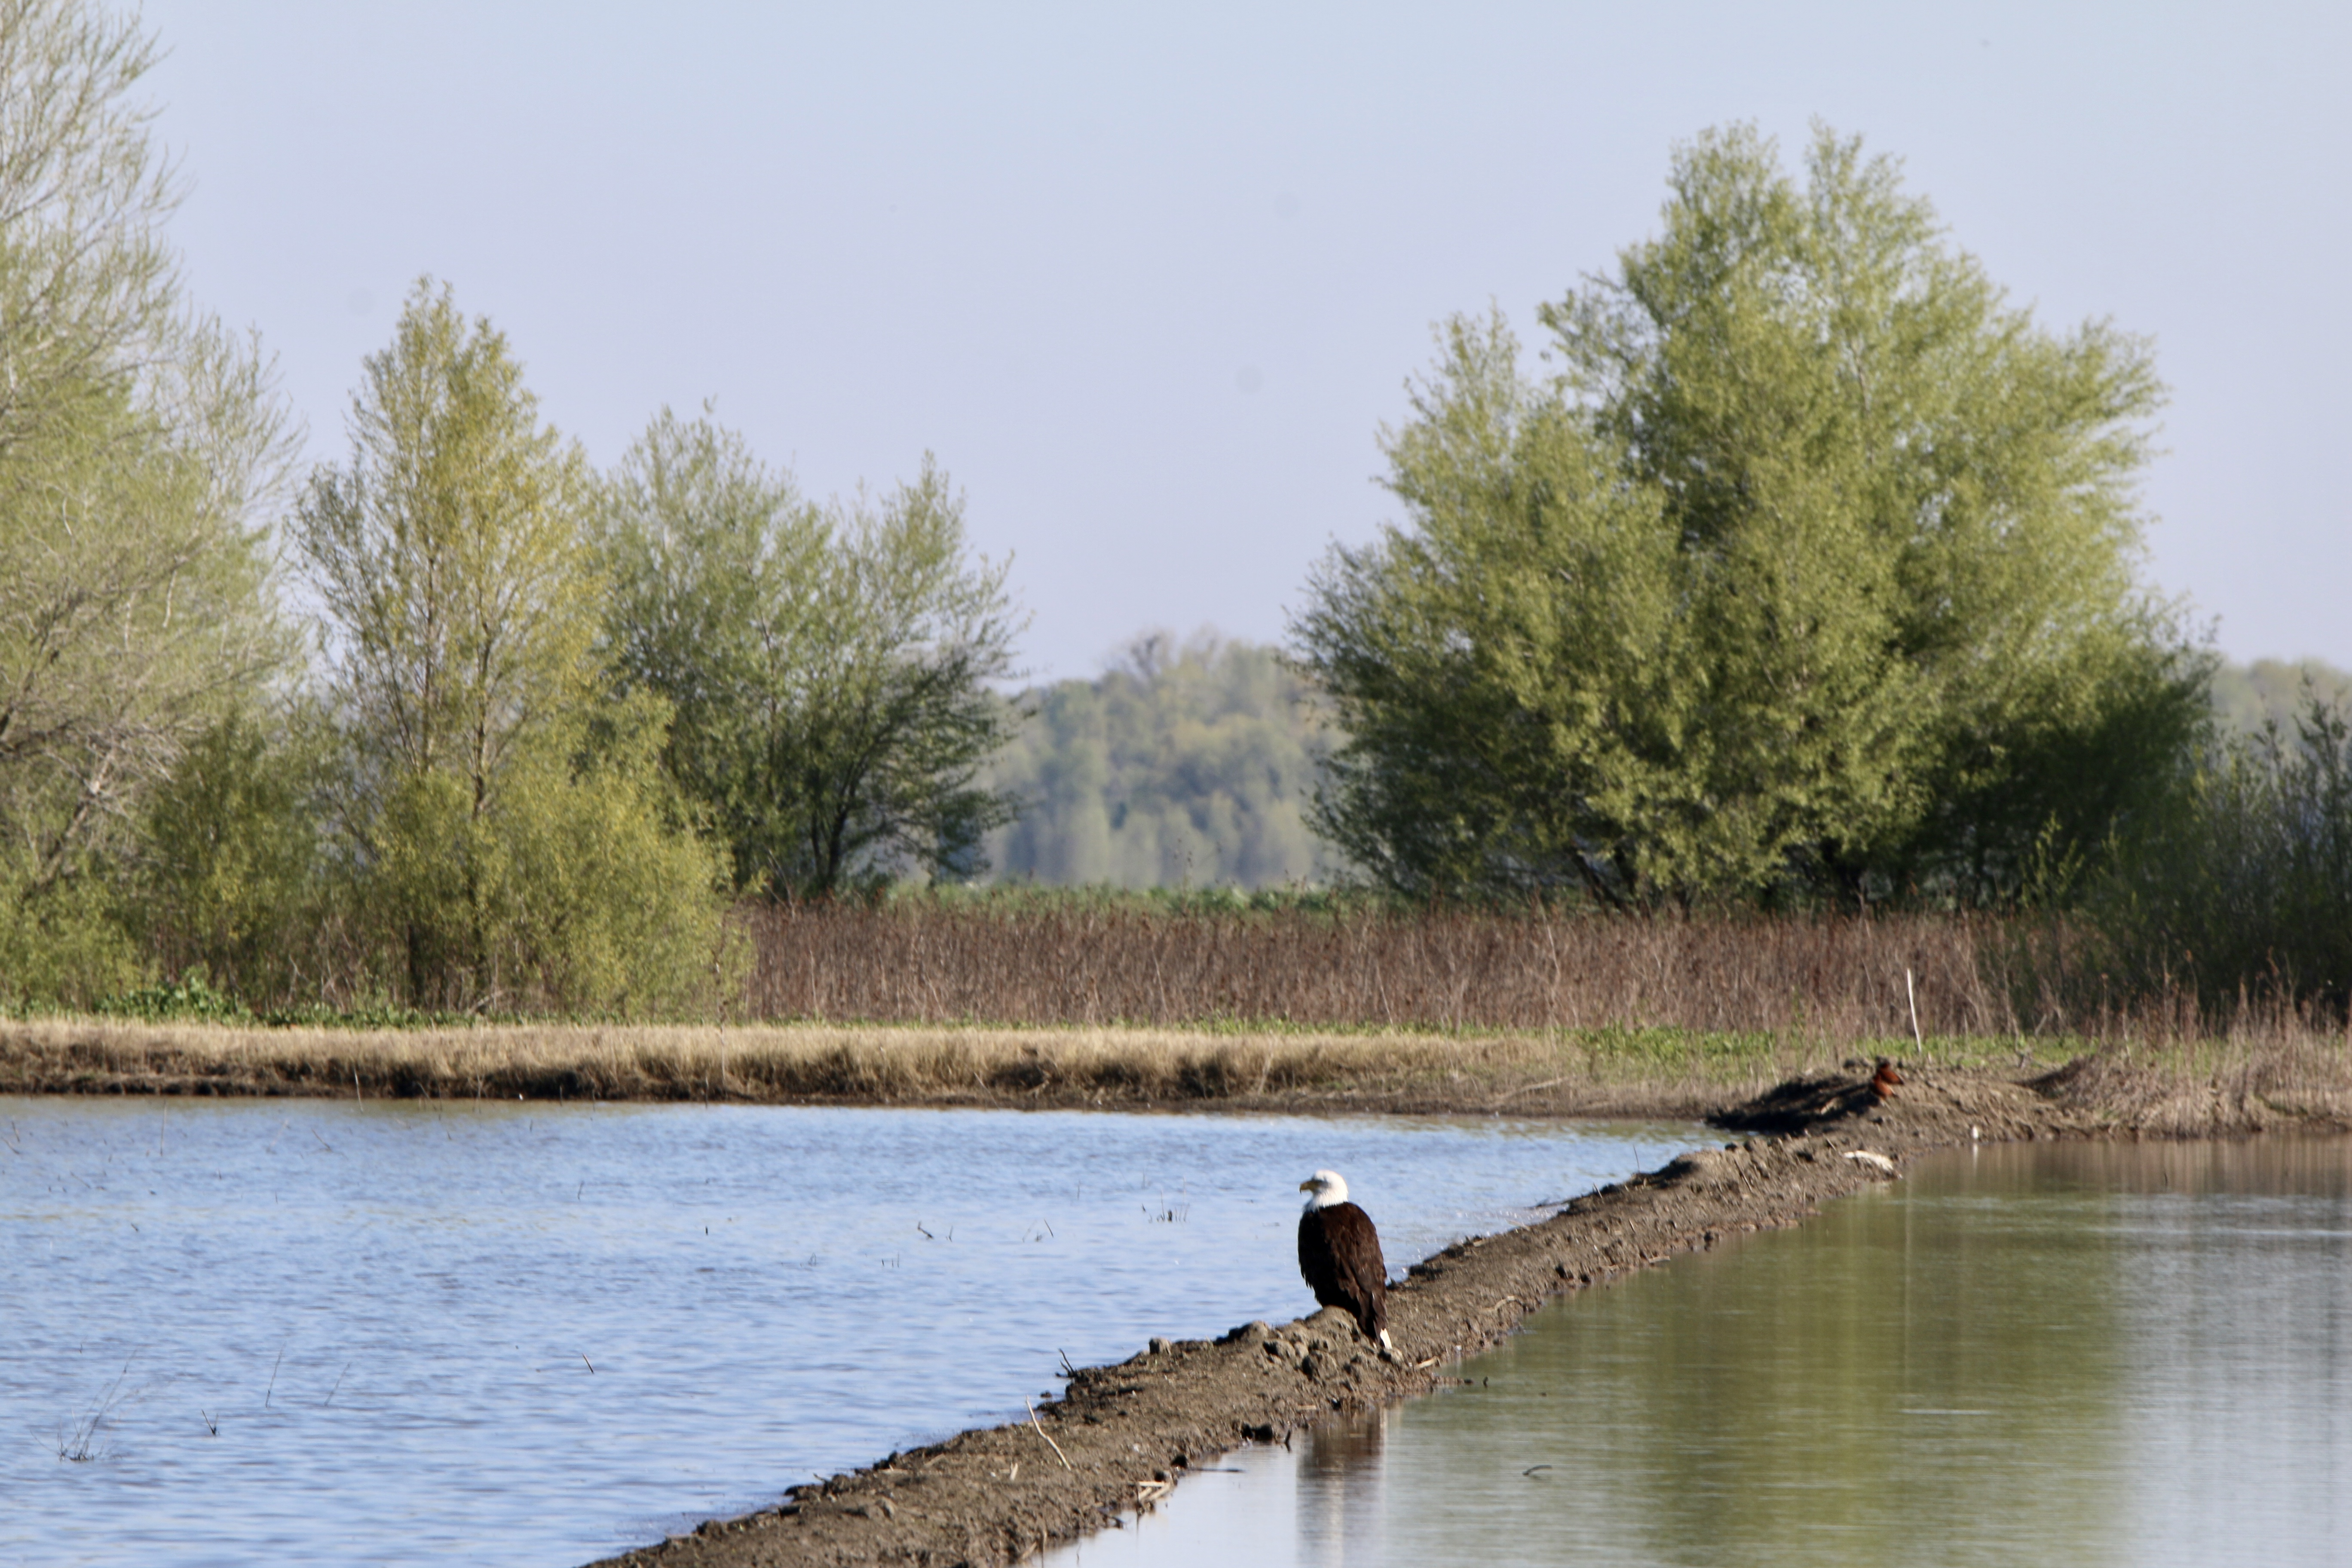 eagle standing in flooded field